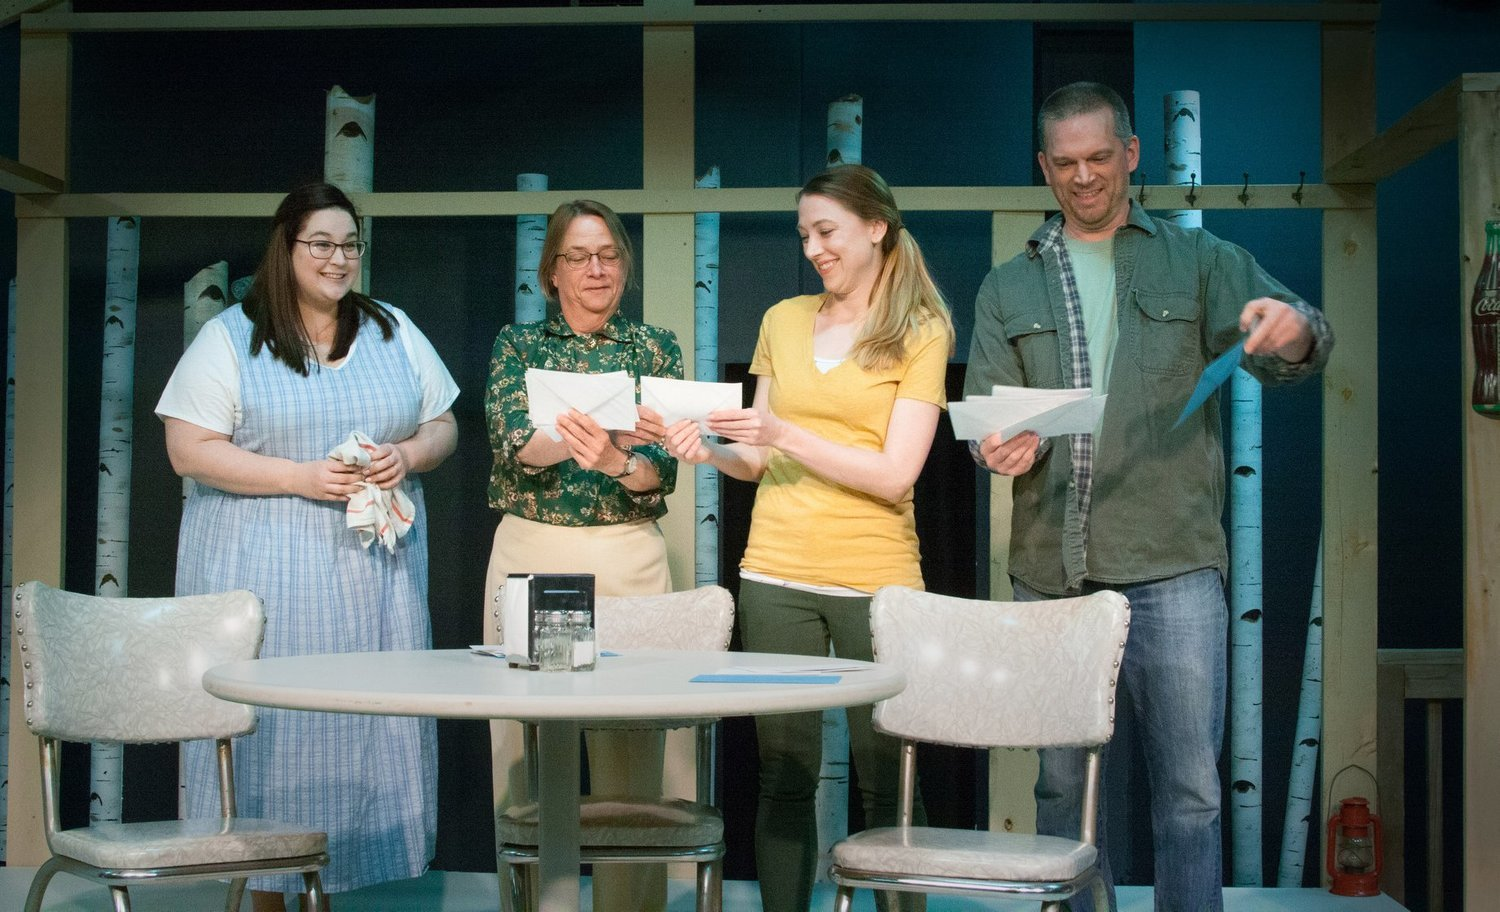 BWW Review: THE SPITFIRE GRILL at DreamWrights Center For Community Arts